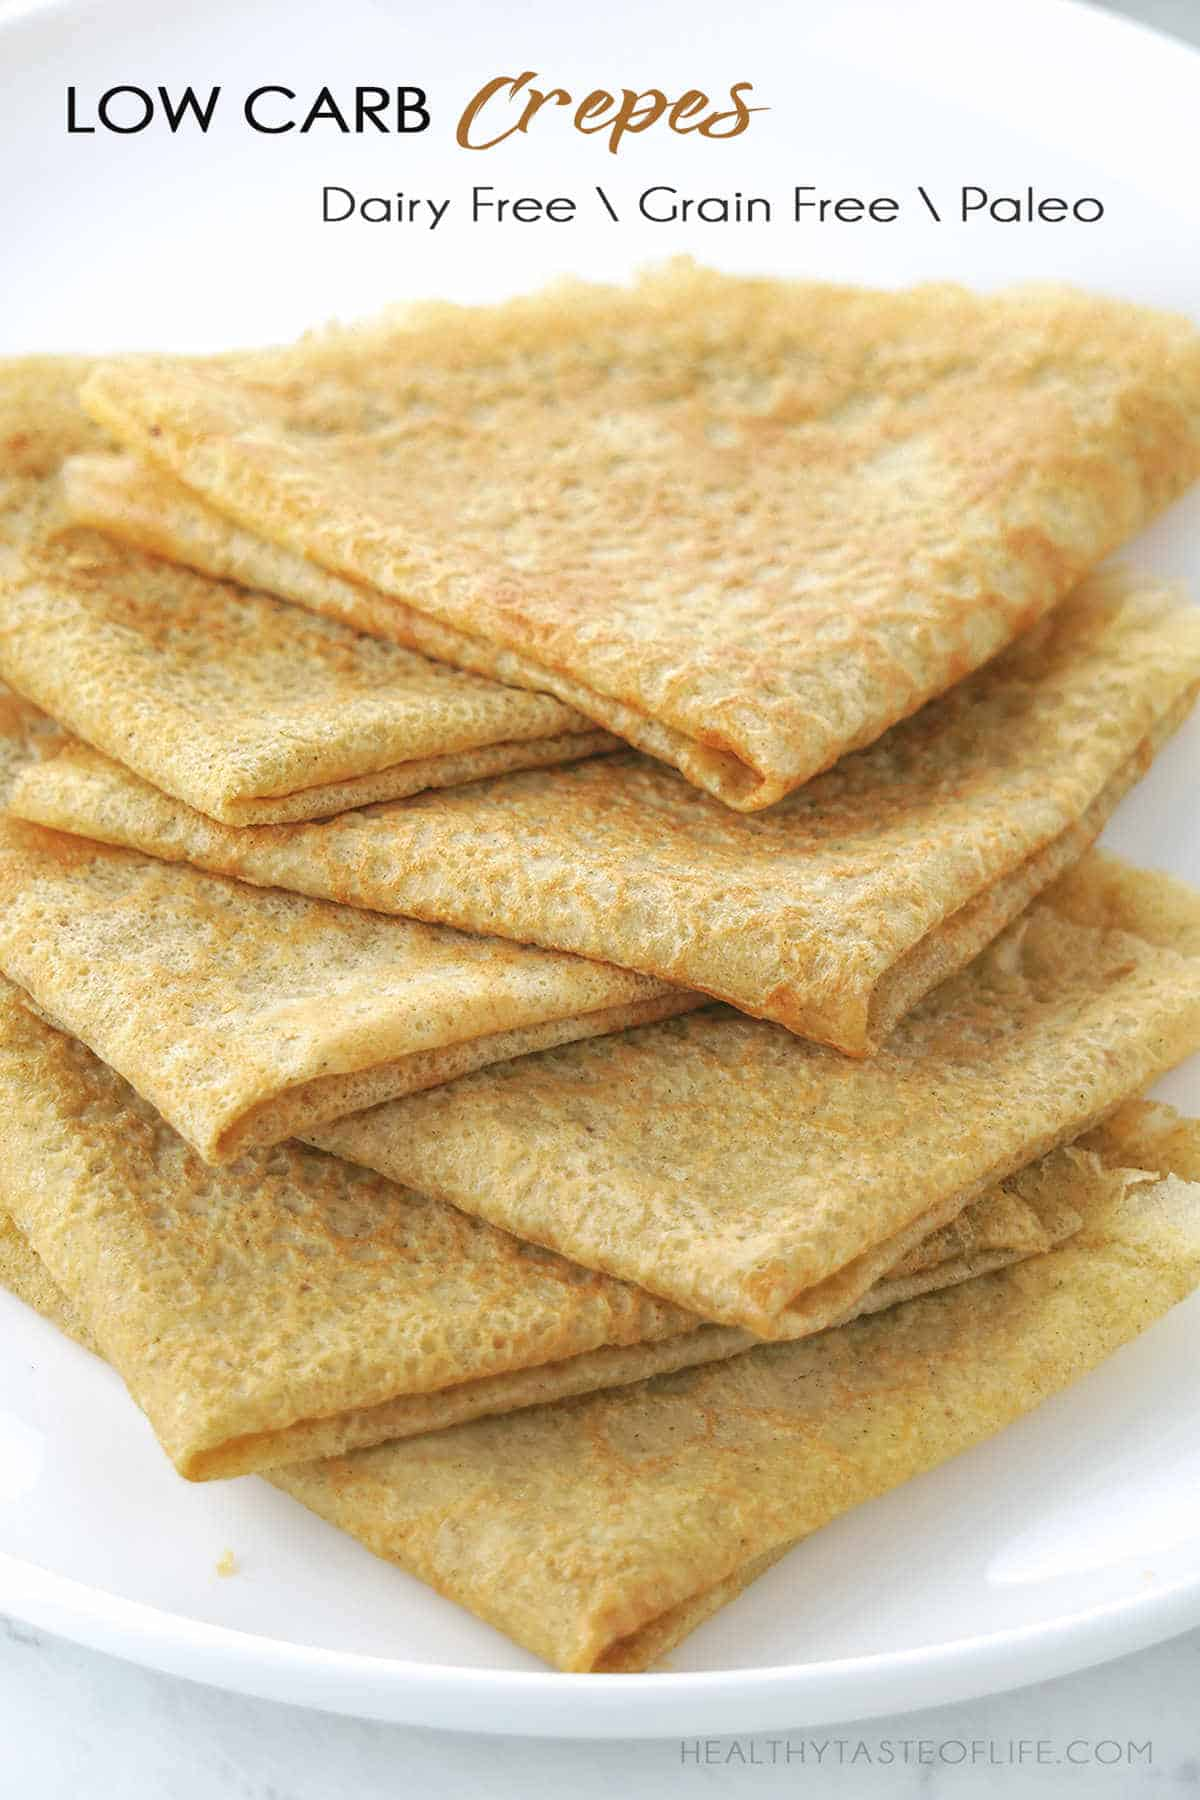 Low carb crepes with almond flour grain free gluten free dairy free paleo.